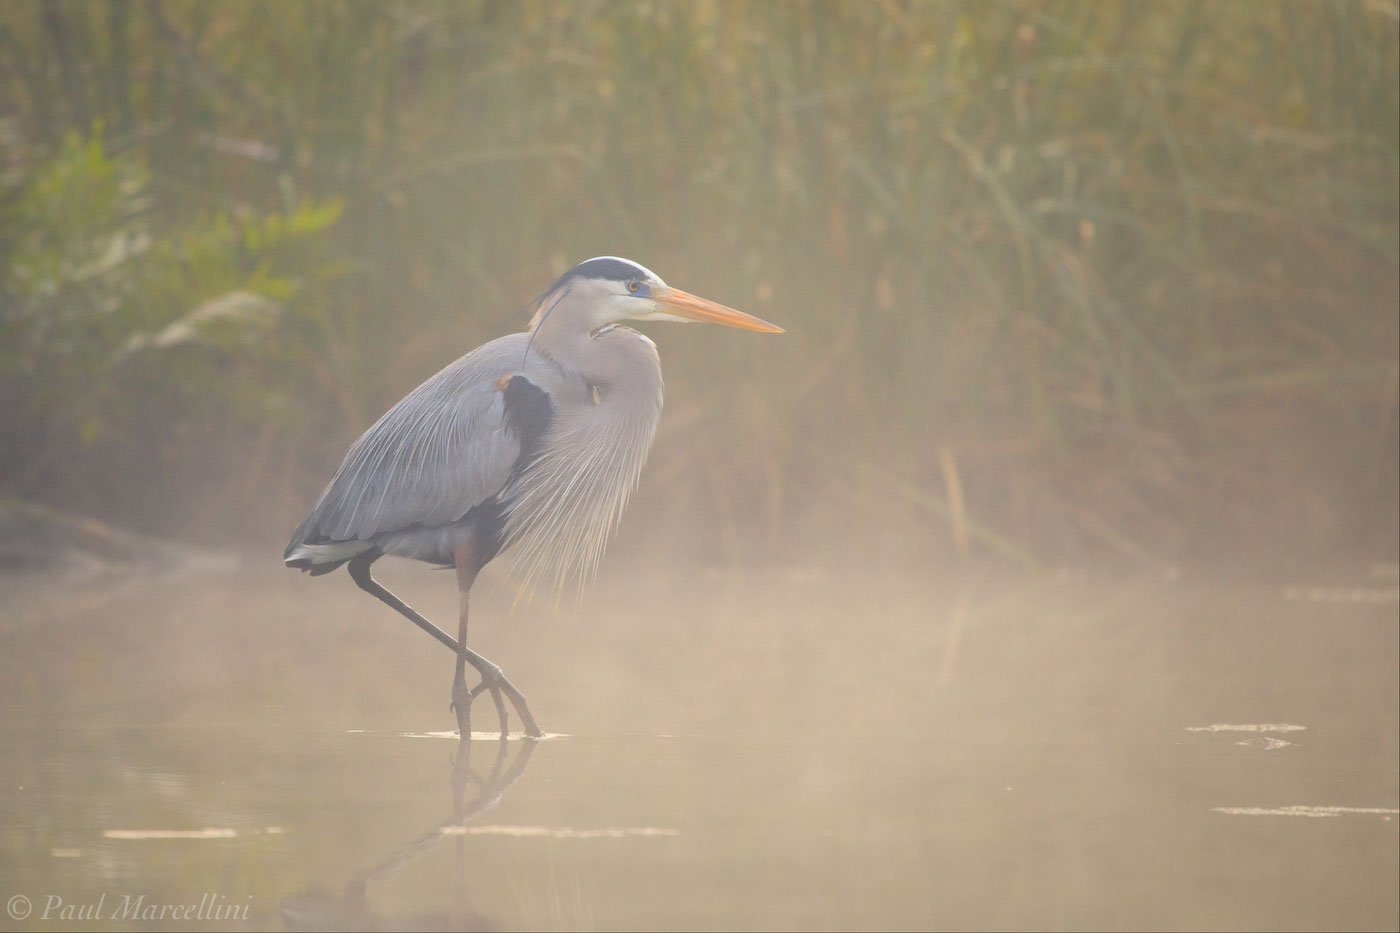 Chassahowitzka National Wildlife Refuge, river, great blue heron, Ardea herodias, fog, photo